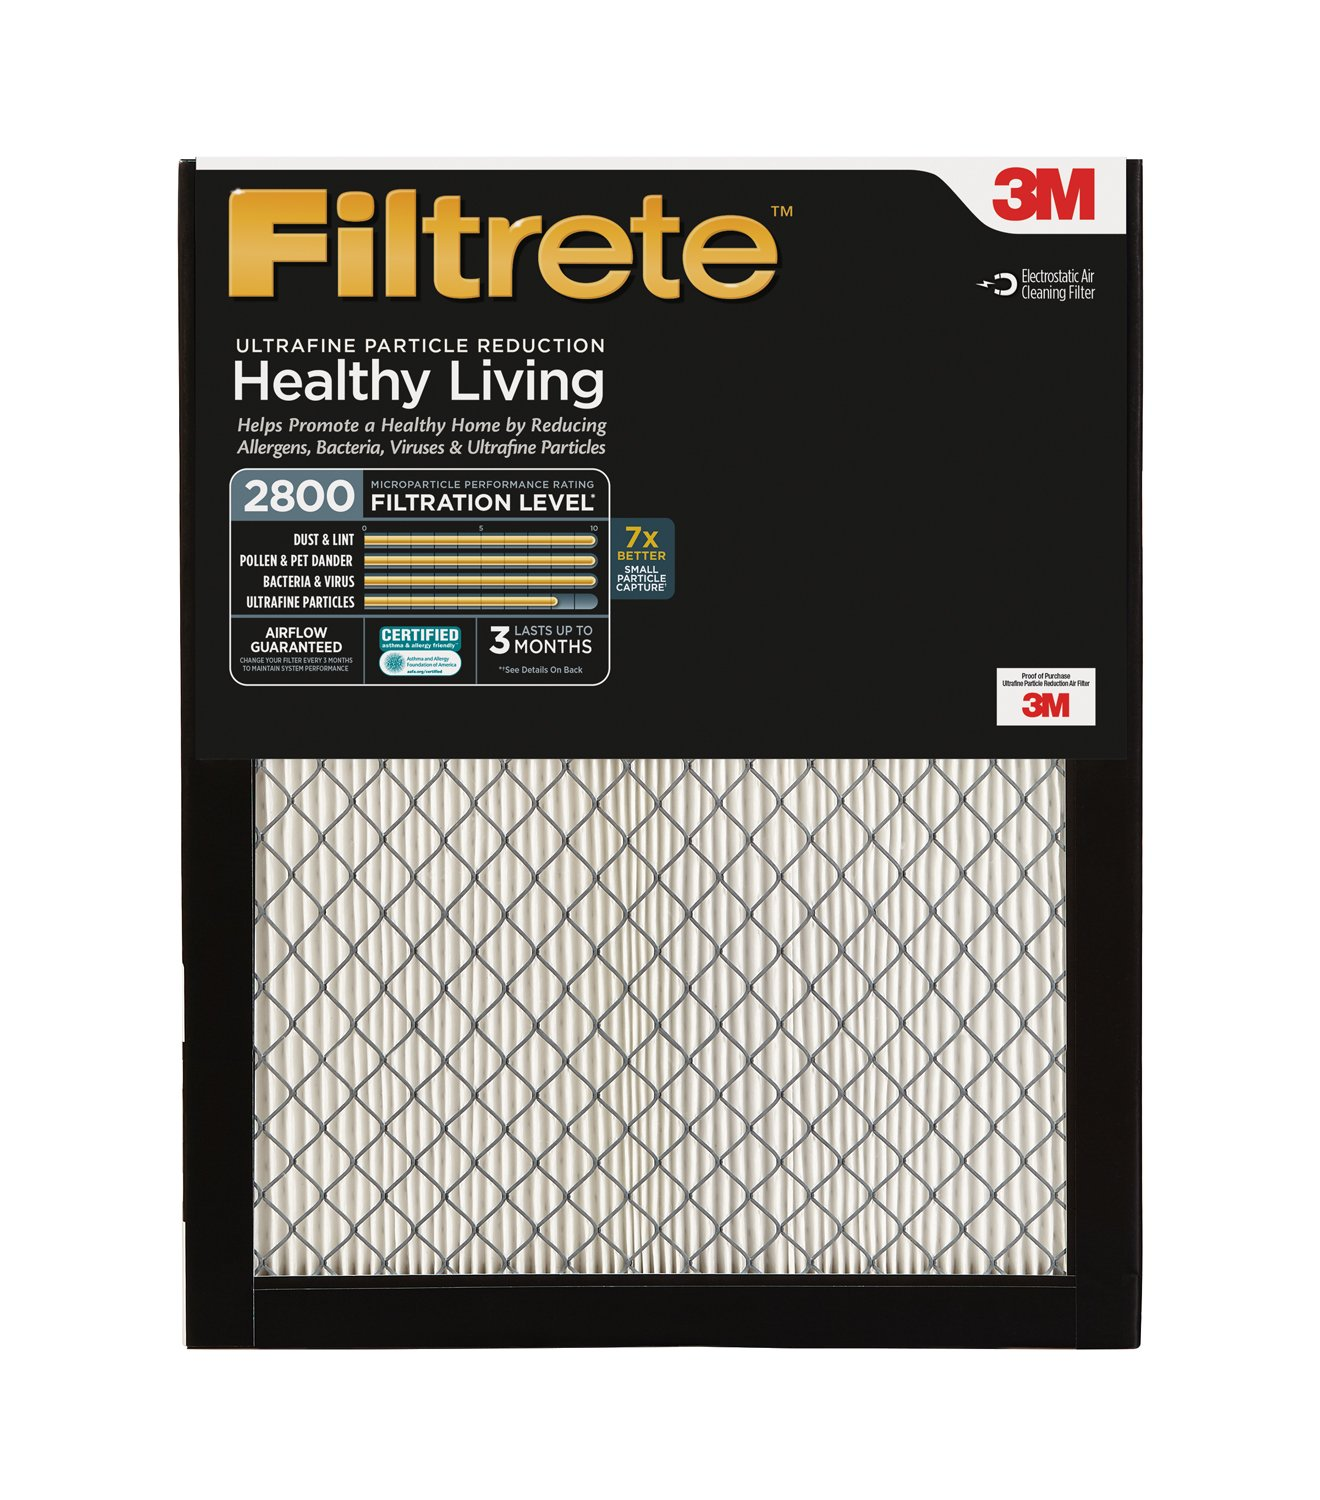 5. Filtrete 20x20x1, AC Furnace Air Filter, MPR 2800, Healthy Living Ultrafine Particle Reduction, 2-Pack